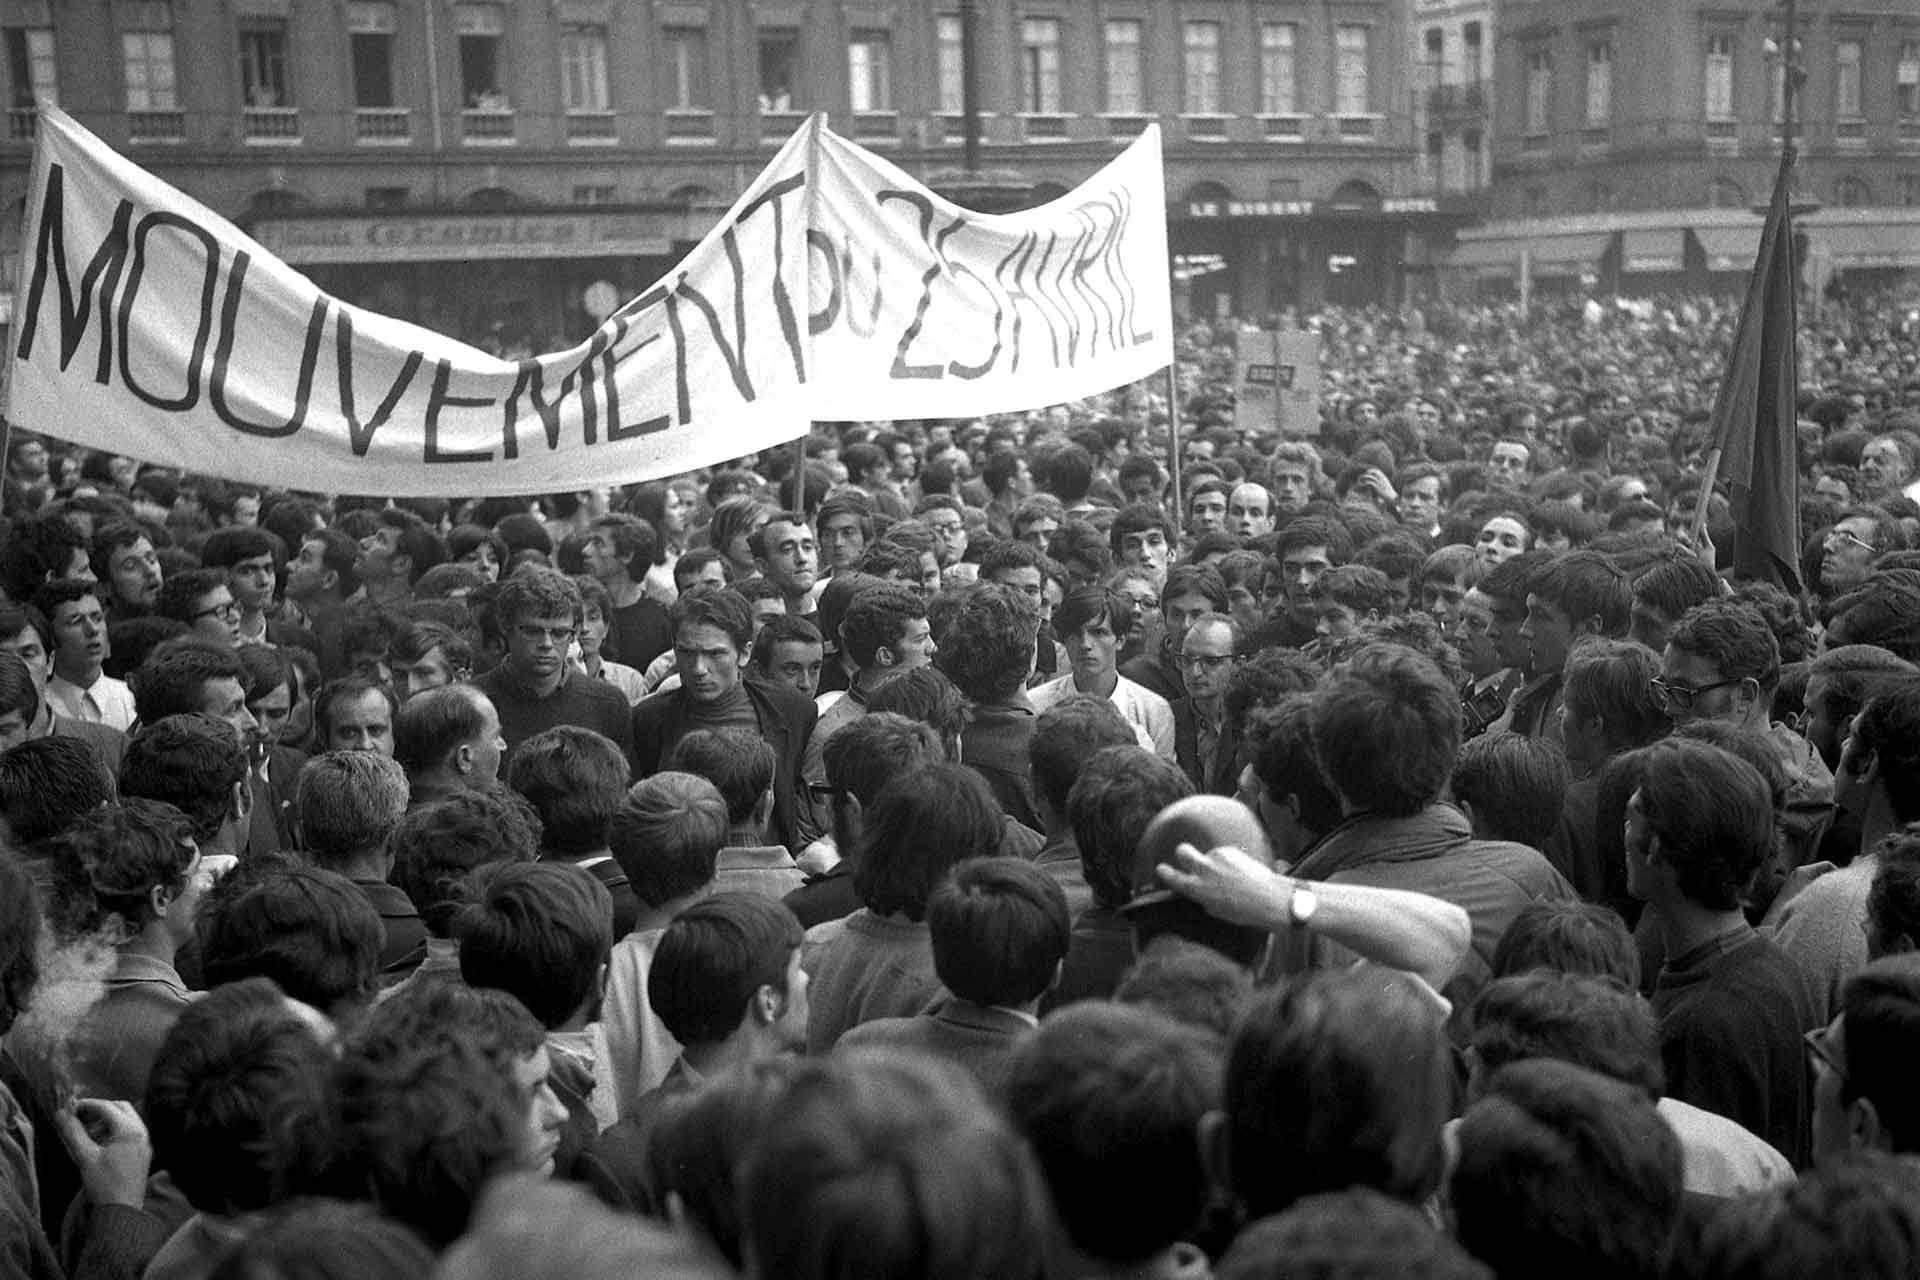 Student demonstration on Place du Capitole, May 24, 1968 (Photo: Fonds André Cros, Wikimedia Commons)